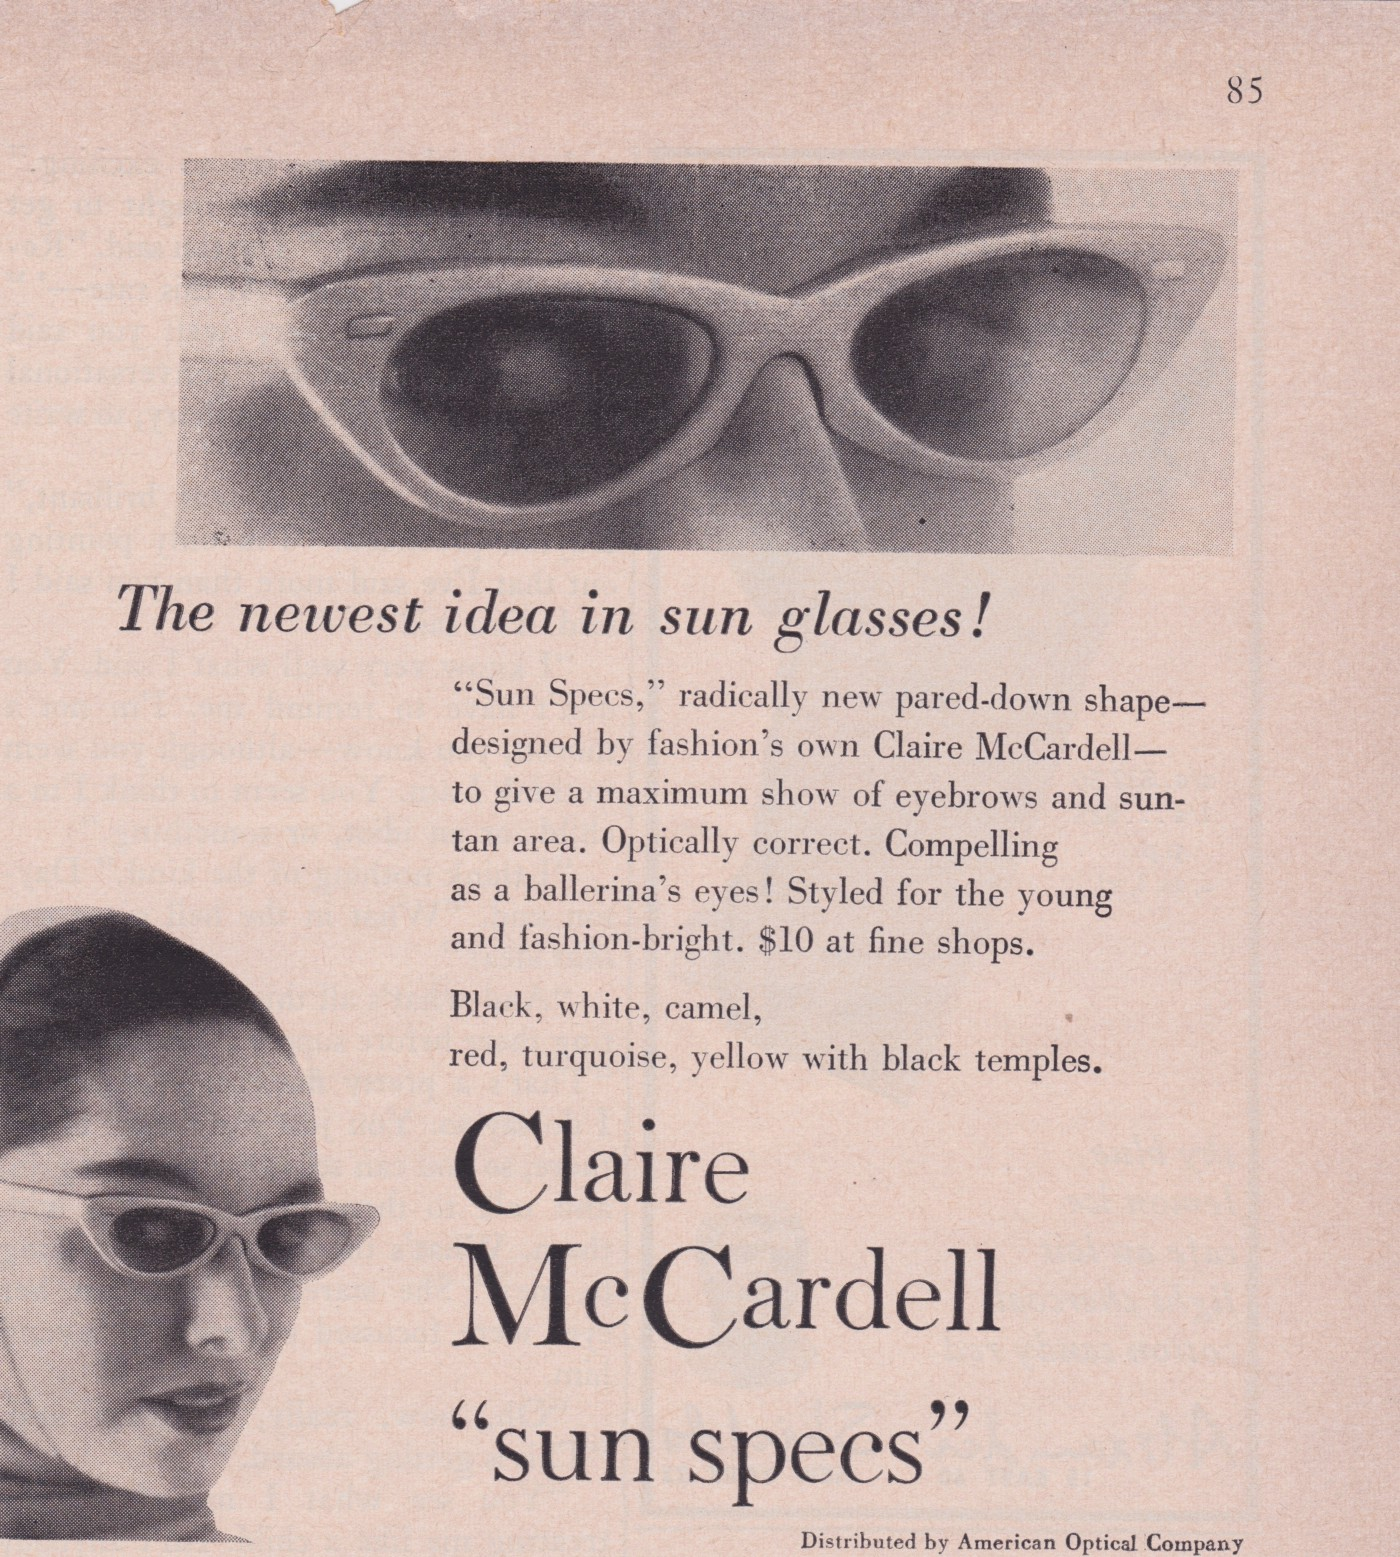 2004e638210b Research Spotlight: Claire McCardell and the Ballet Flat